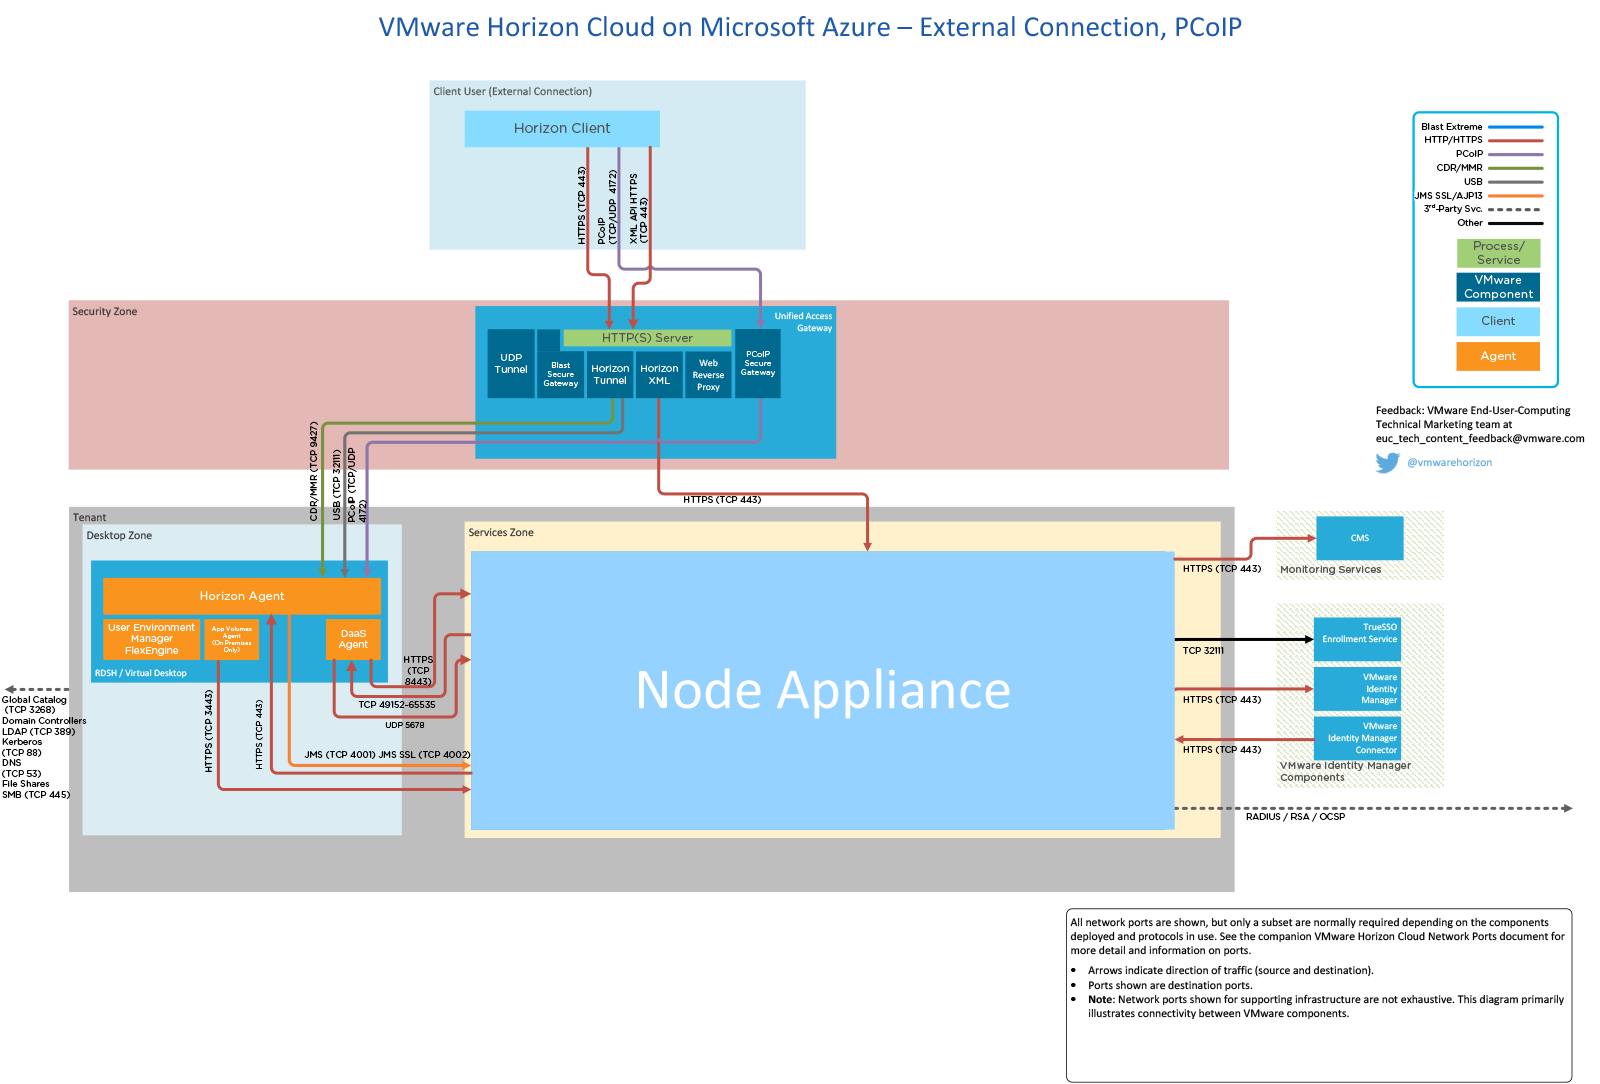 Horizon Cloud on Microsoft Azure, External Connection with PCoIP